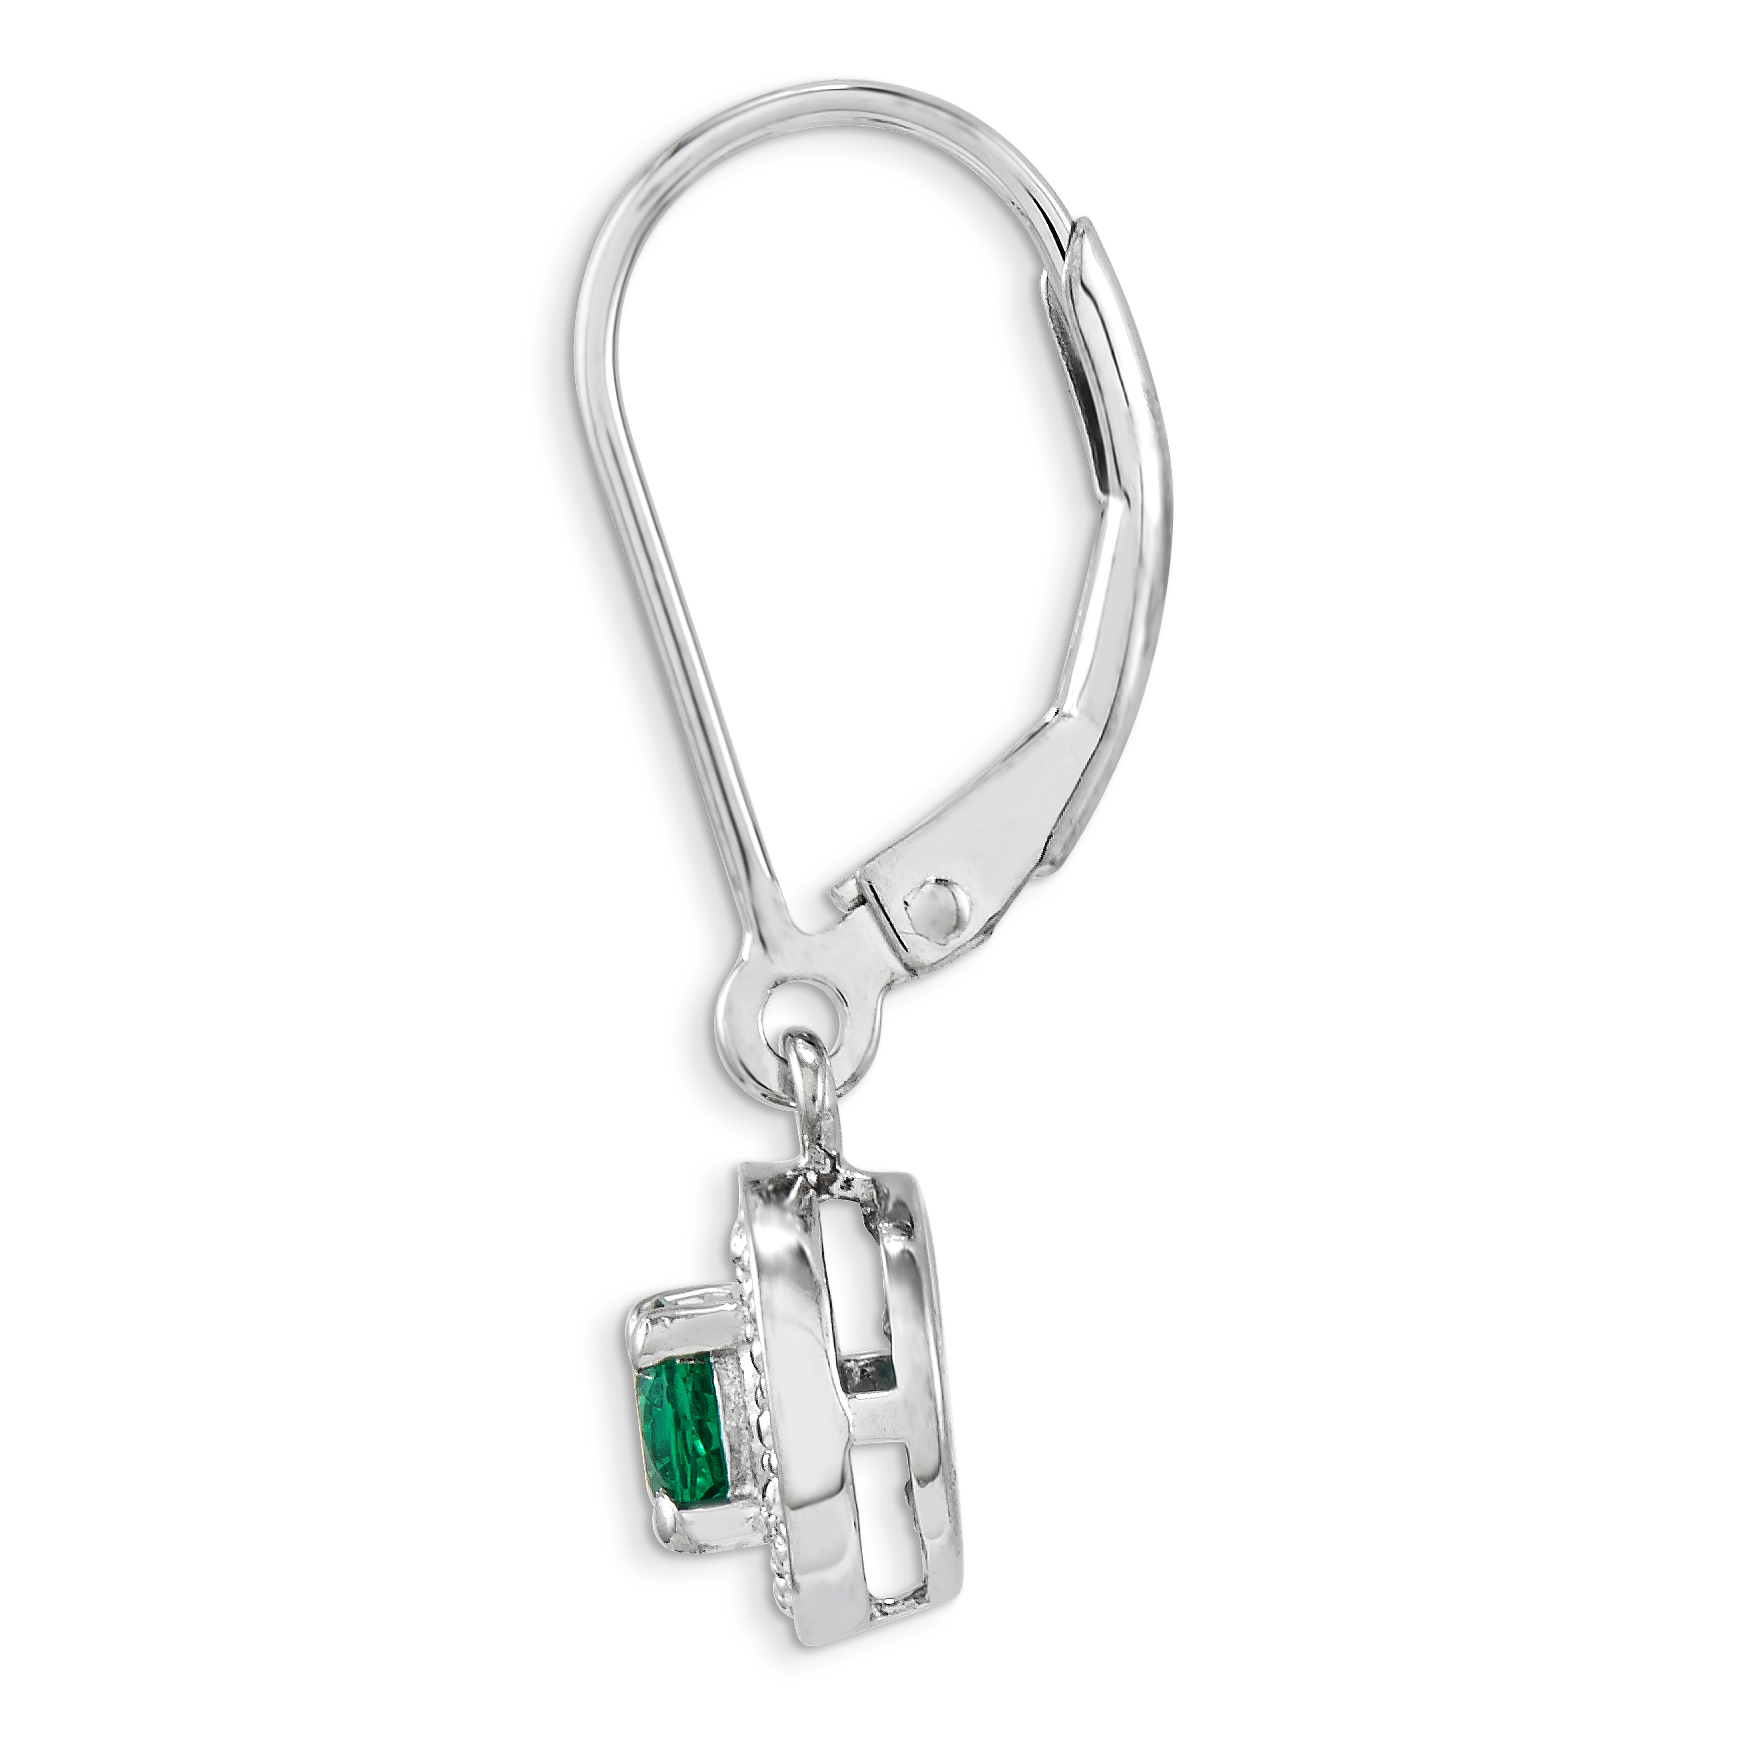 925 Sterling Silver Diamond Created Green Emerald Leverback Earrings Lever Back Set Drop Dangle Birthstone May Fine Jewelry Gifts For Women For Her - image 2 of 8